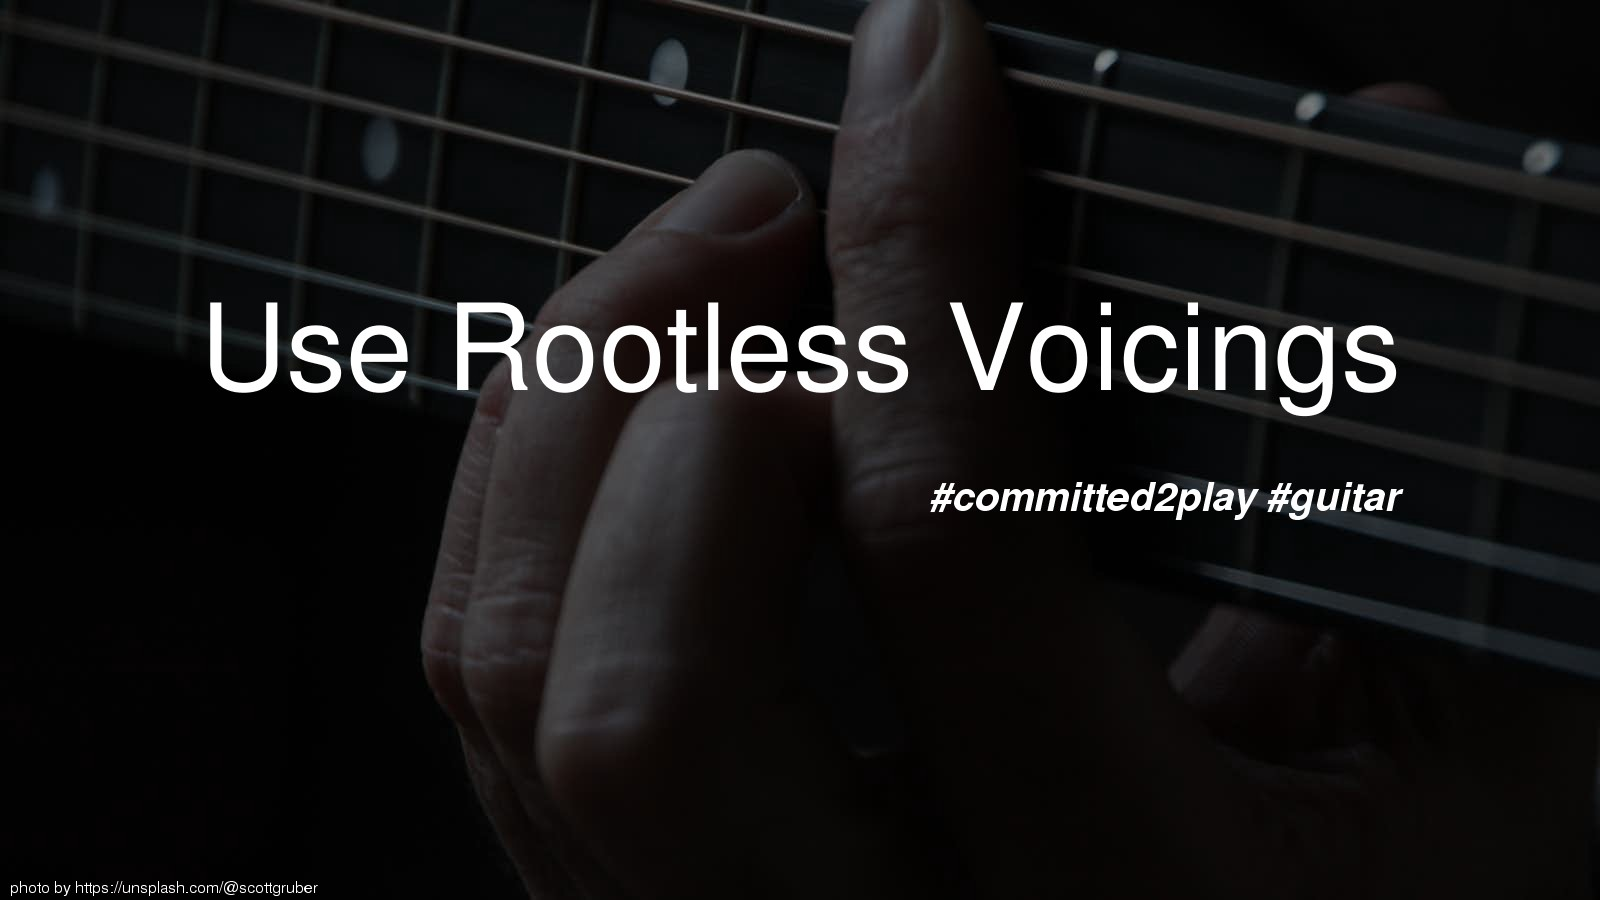 Use Rootless Voicings